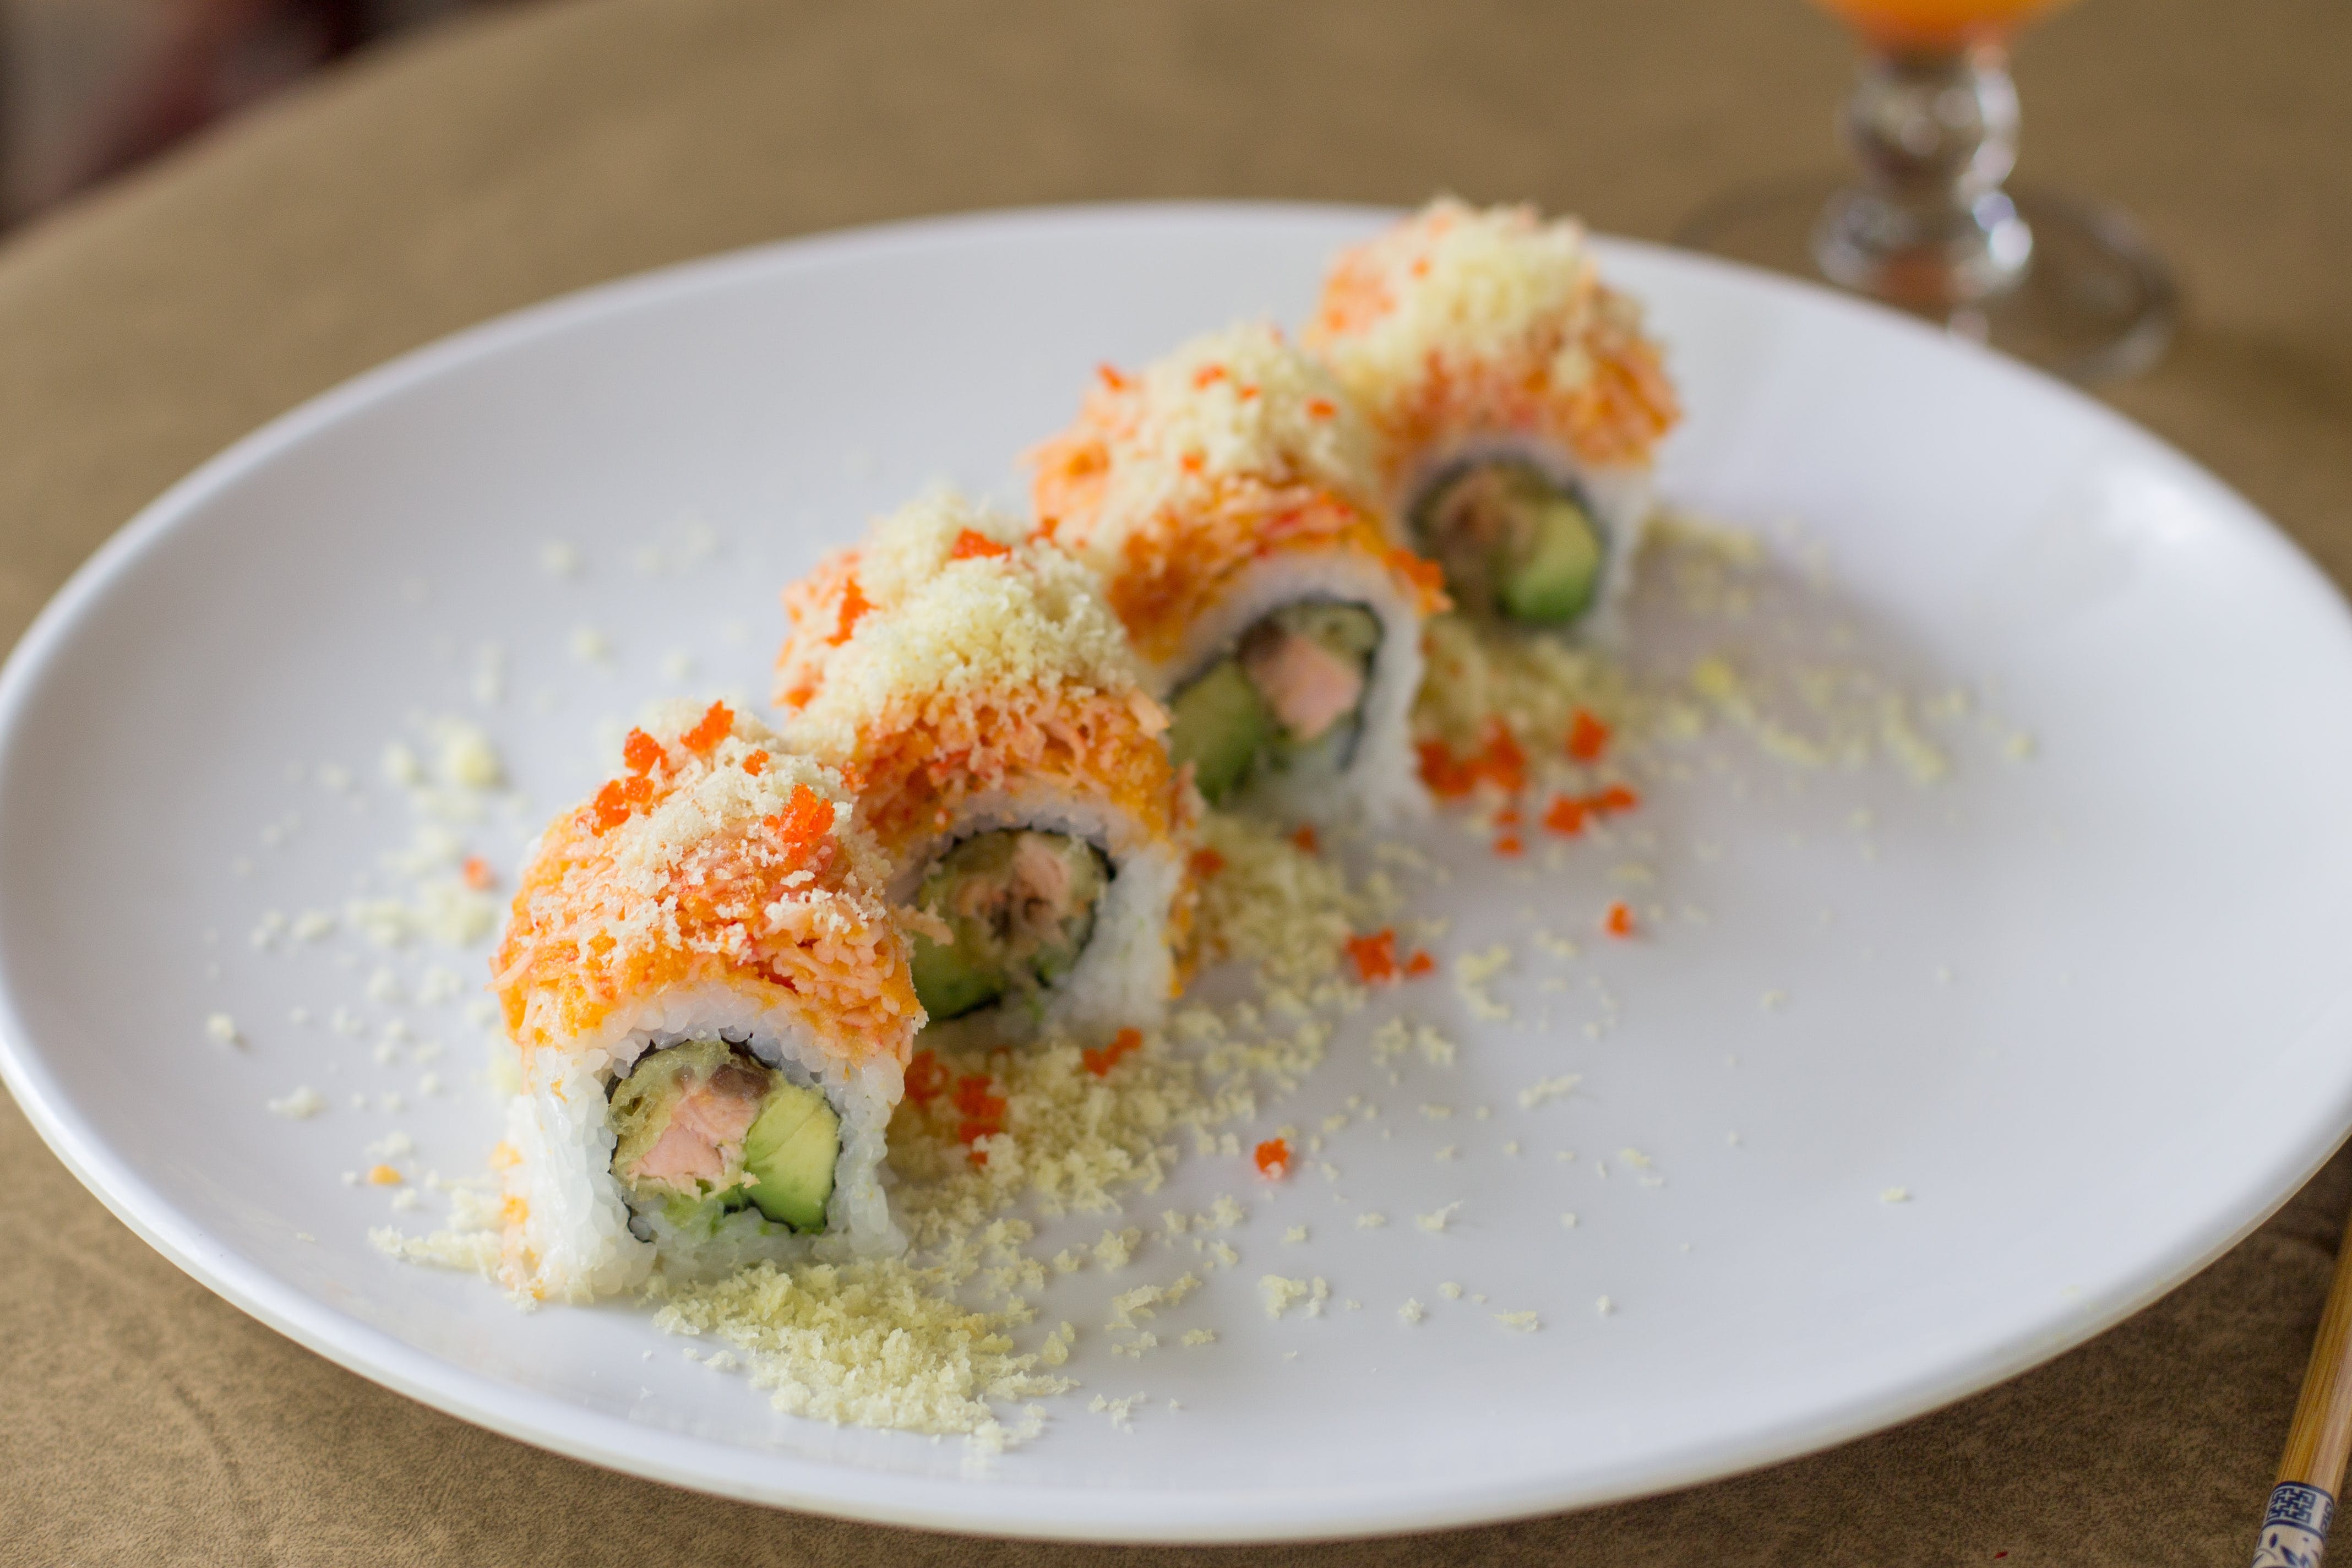 SP9. Barbossa Roll (8) from Sushi Pirate in La Crosse, WI